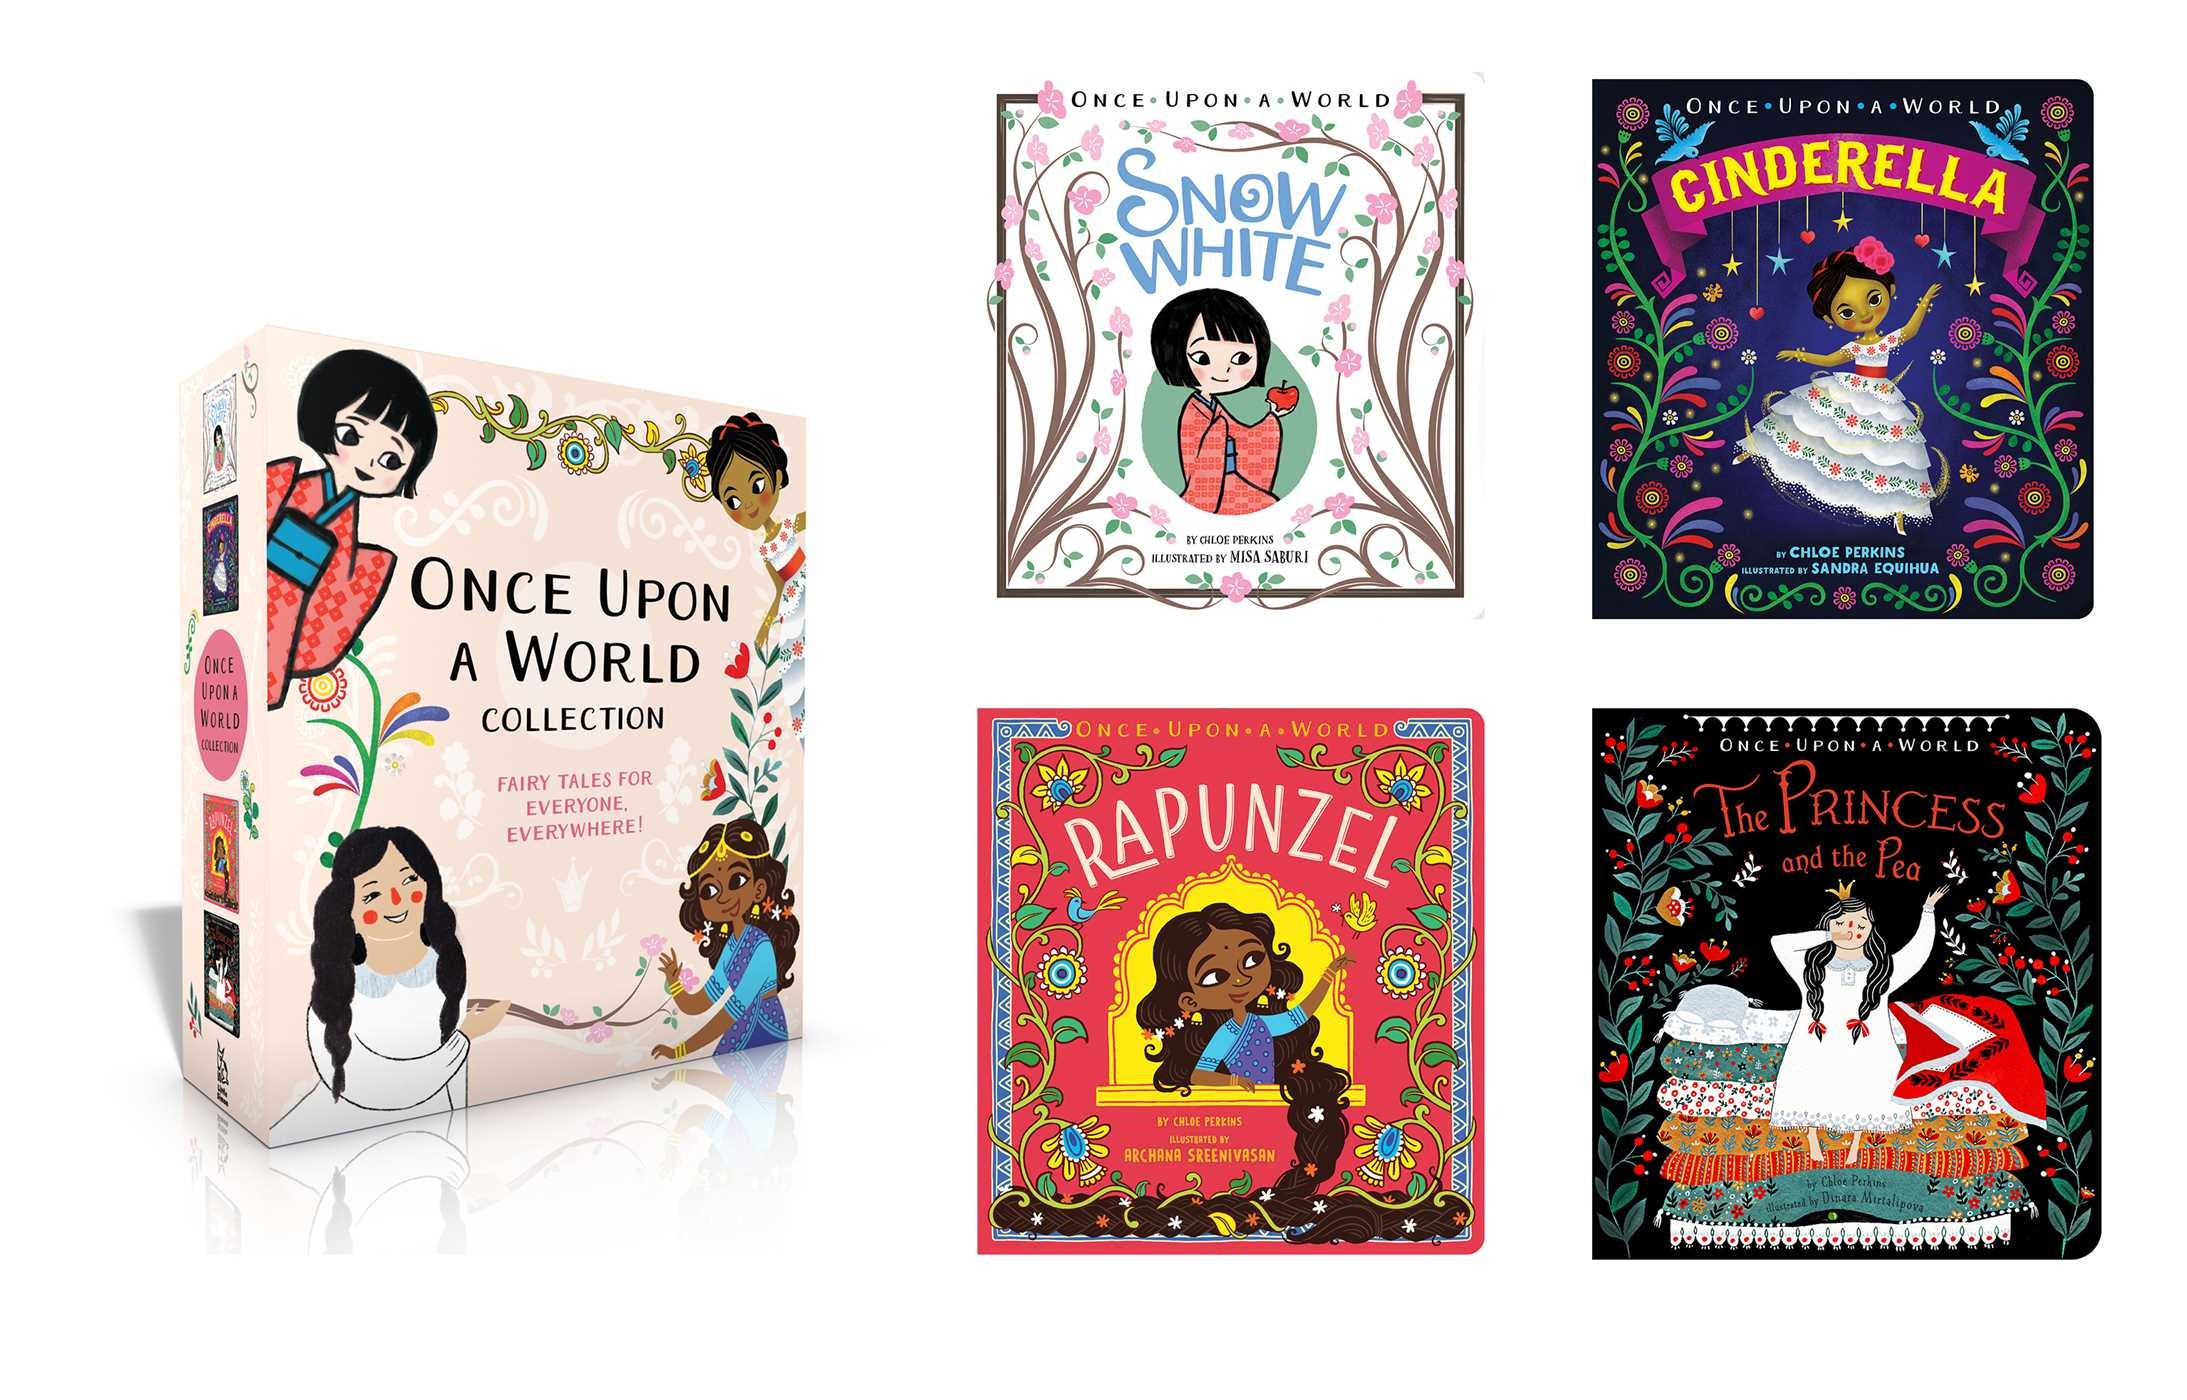 Once upon a world collection 9781534412903.in01